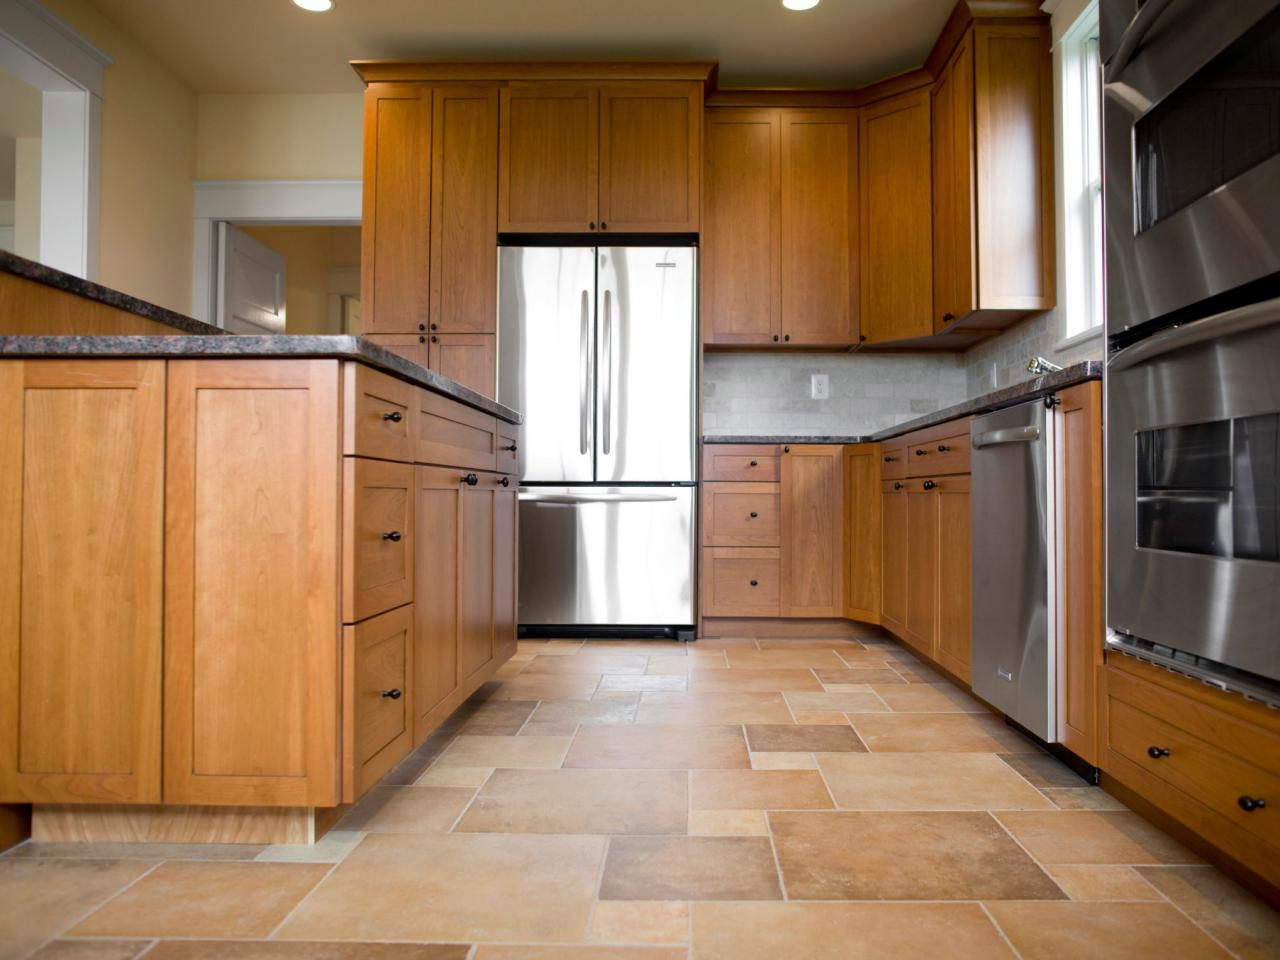 Charmant Related To: Kitchen Floors Floor Tile ...